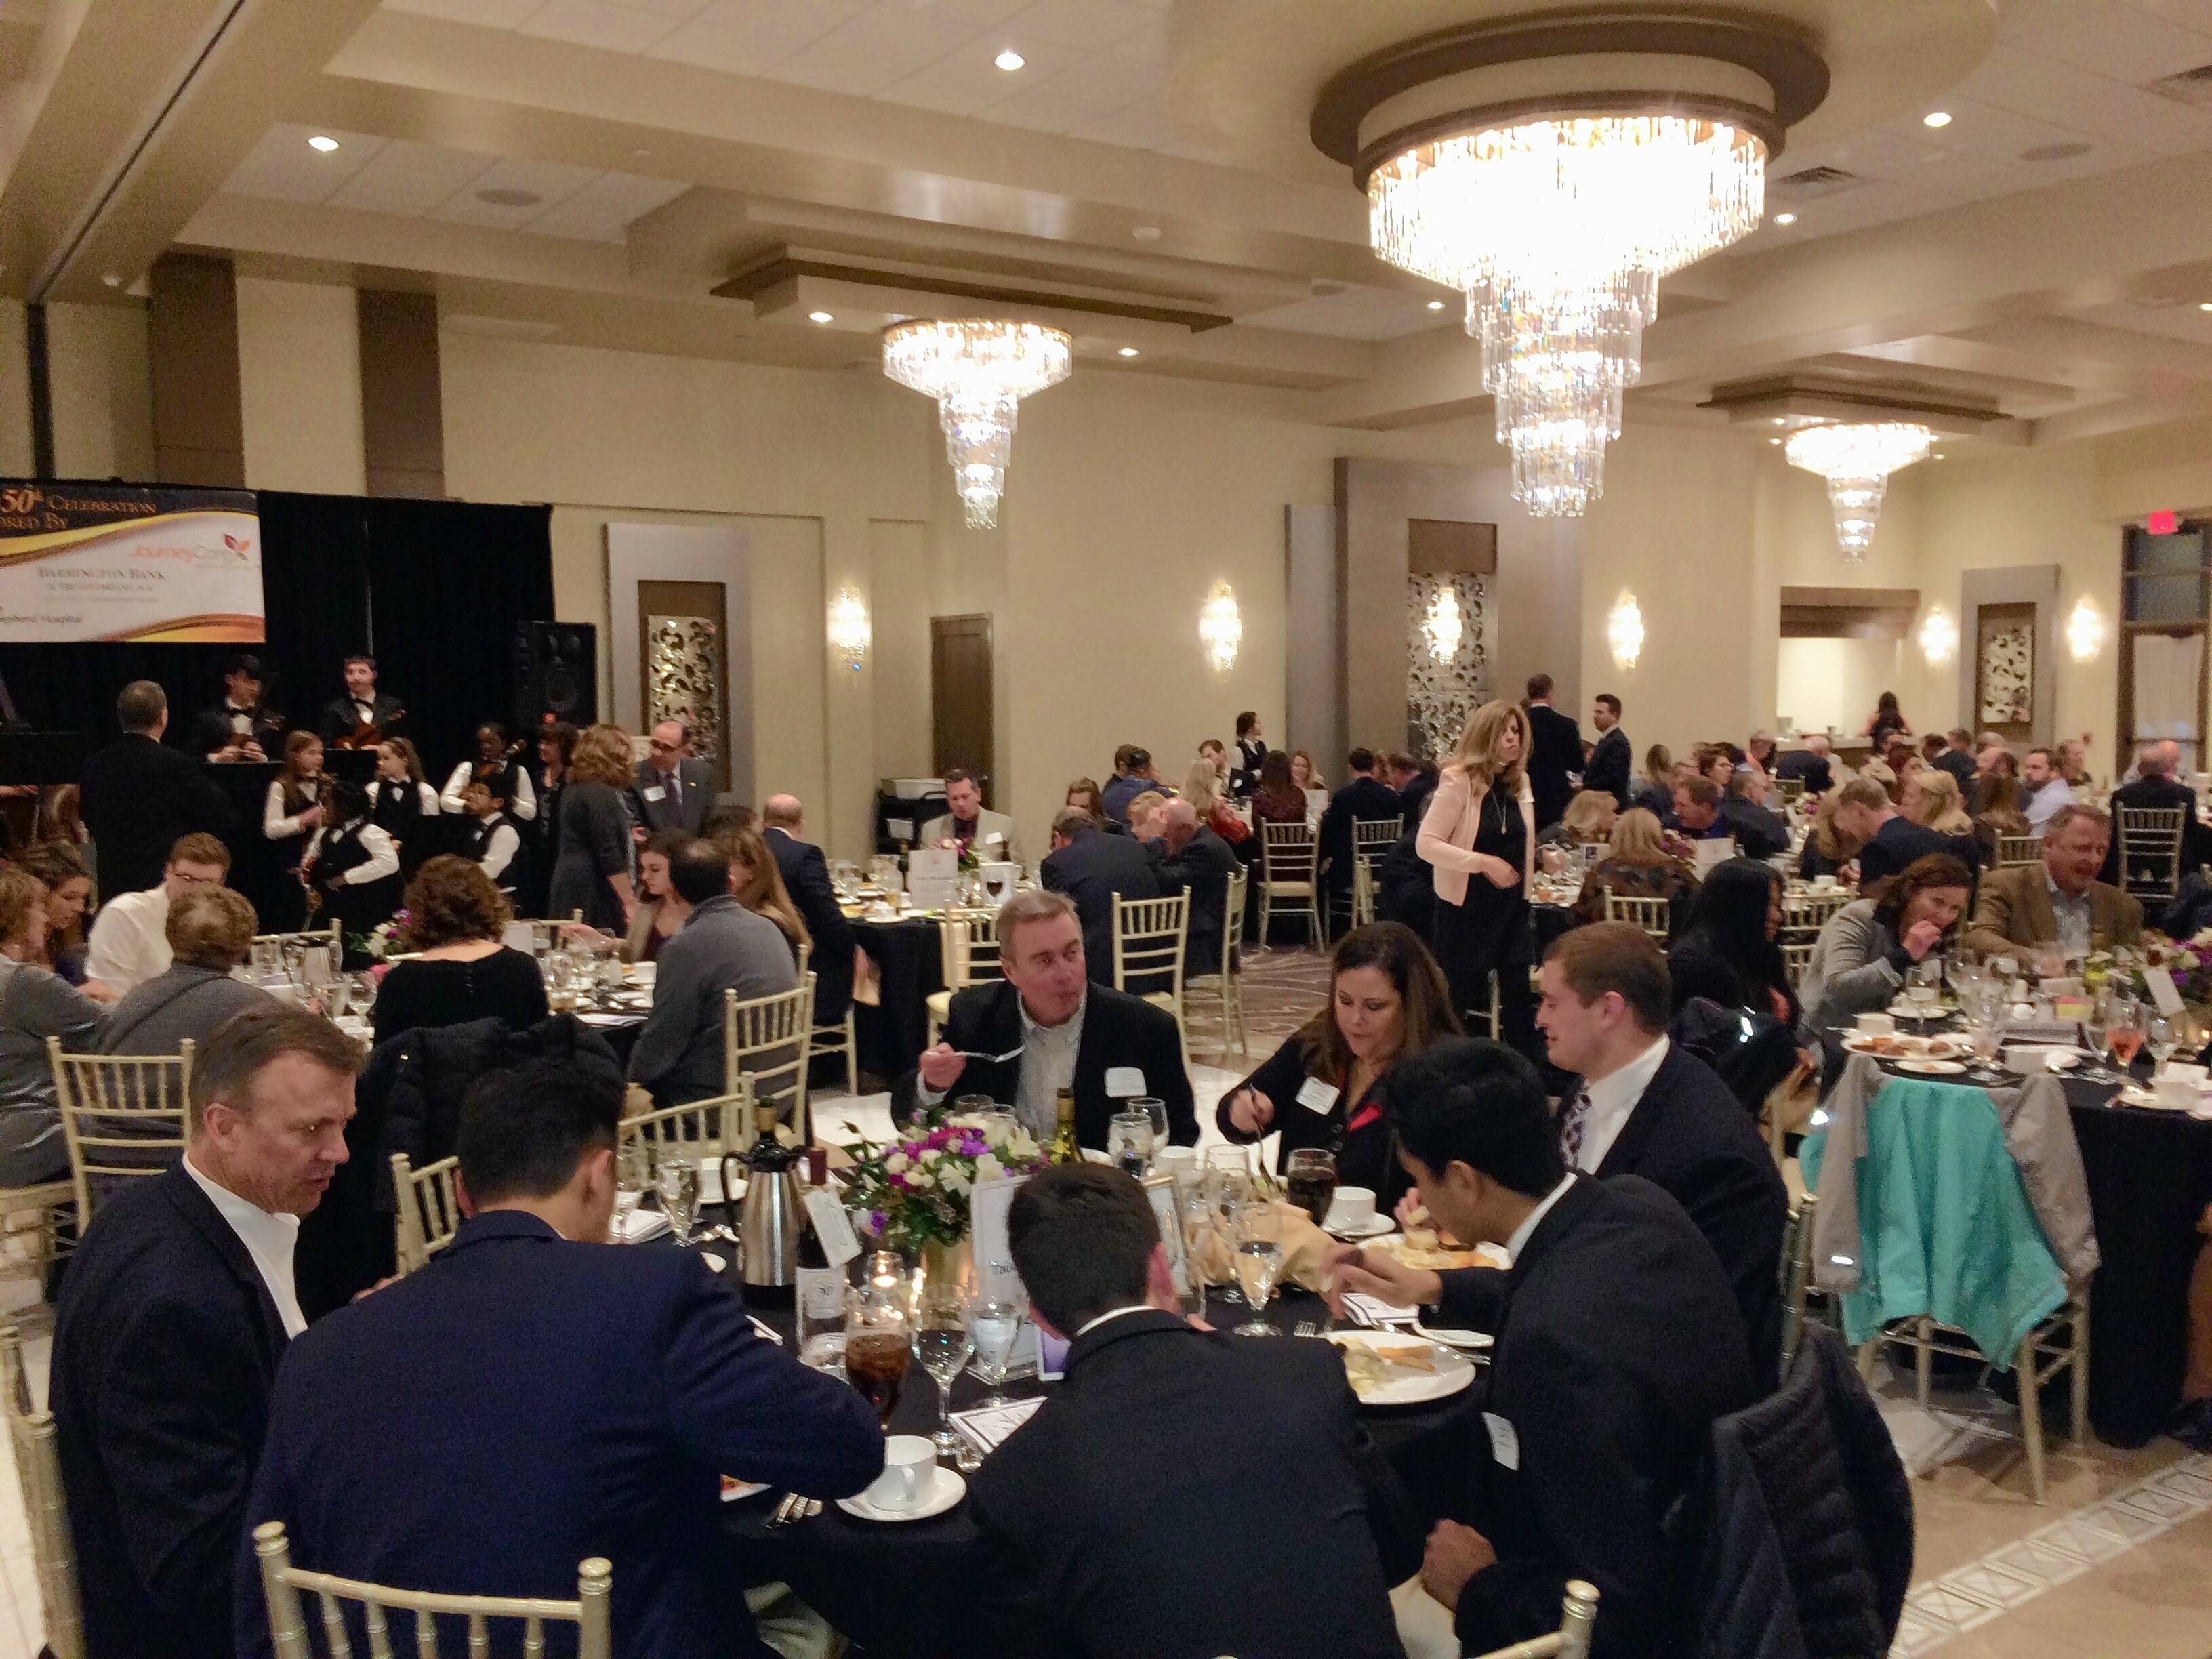 Barrington Area Chamber of Commerce is celebrating its 50th anniversary and held its annual dinner and scholarship fundraiser Thursday night at Avante Banquets and Conference Center in Fox River Grove. About 250 members and guests attended.